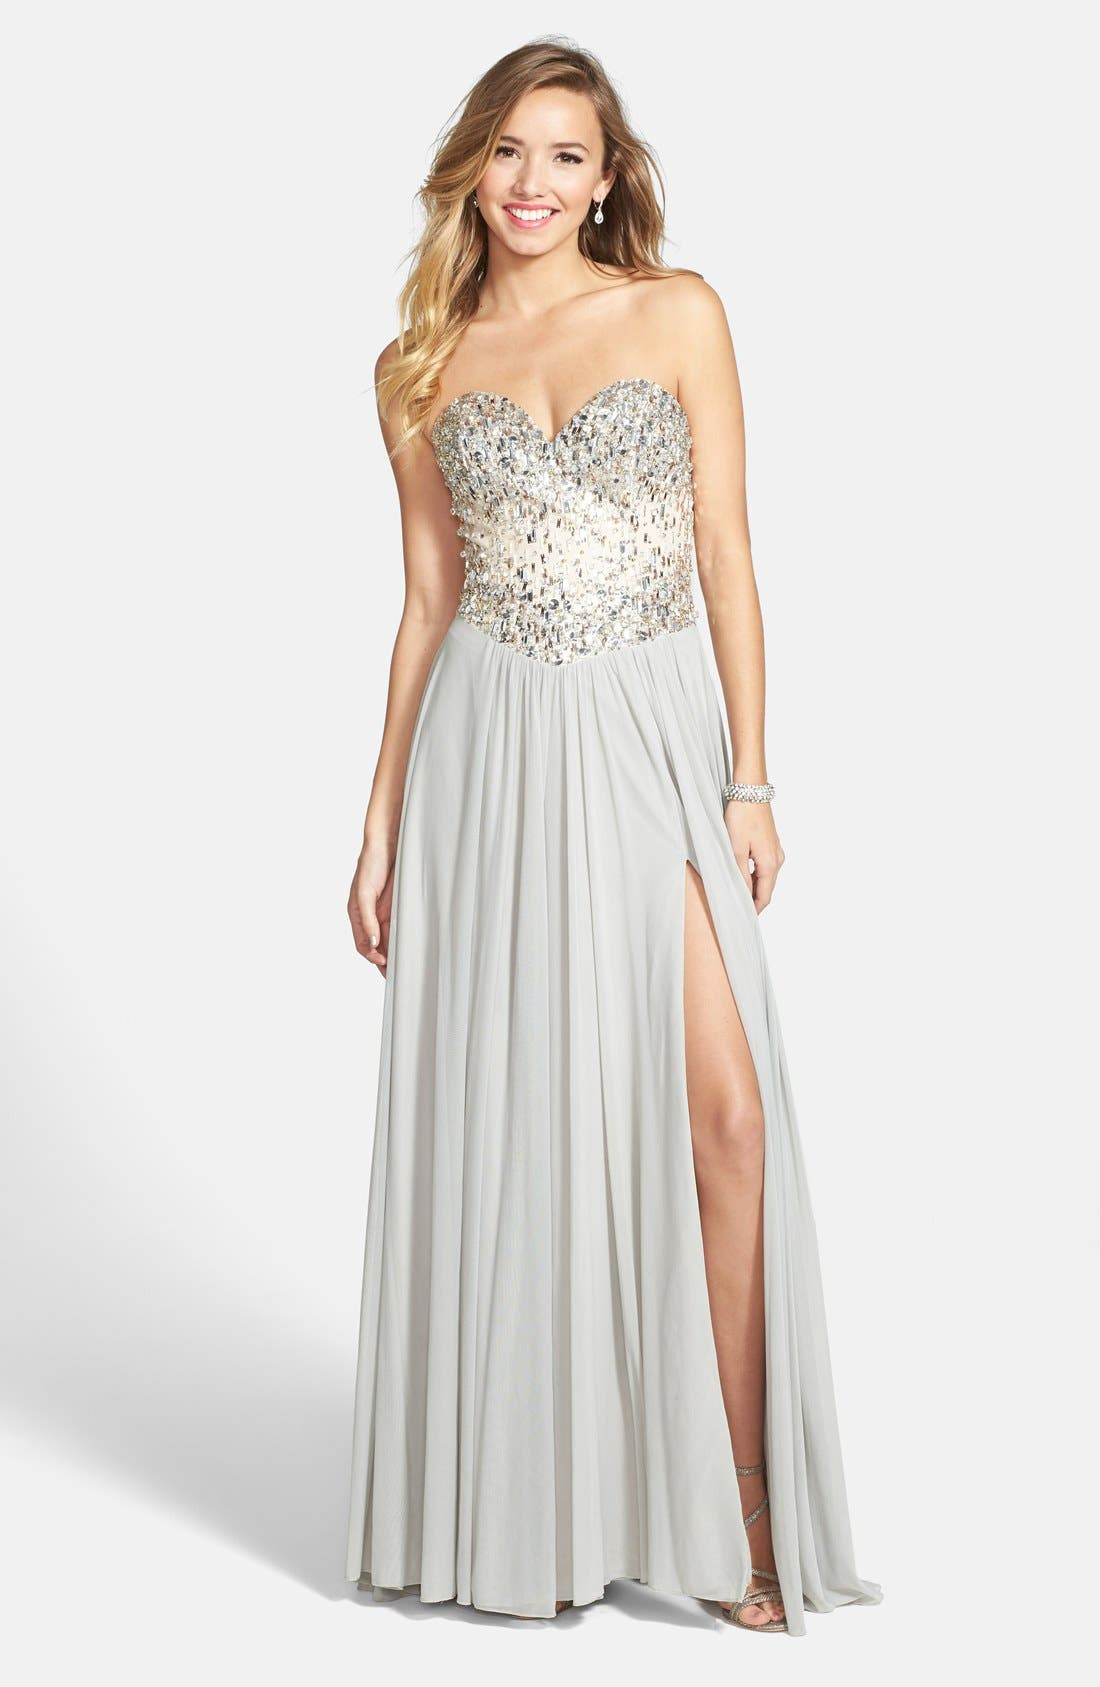 Main Image - Terani Couture Embellished Strapless Chiffon Gown